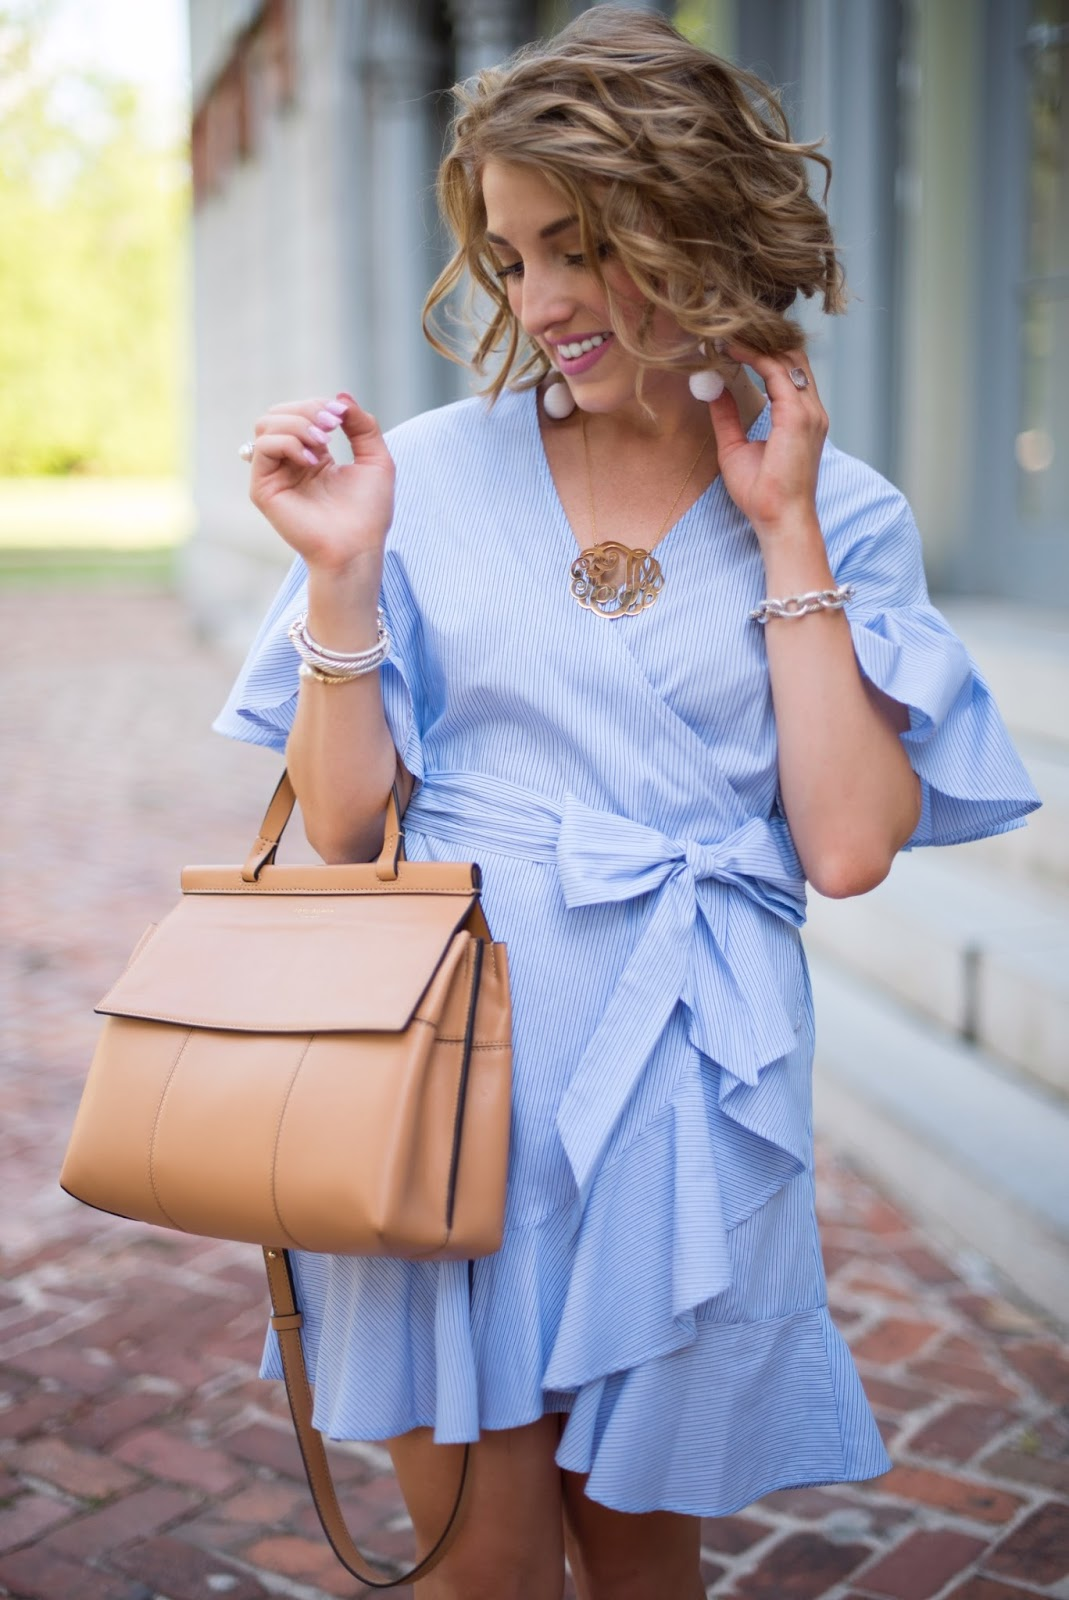 Ruffle Wrap Dress - Click through to see more on Something Delightful Blog